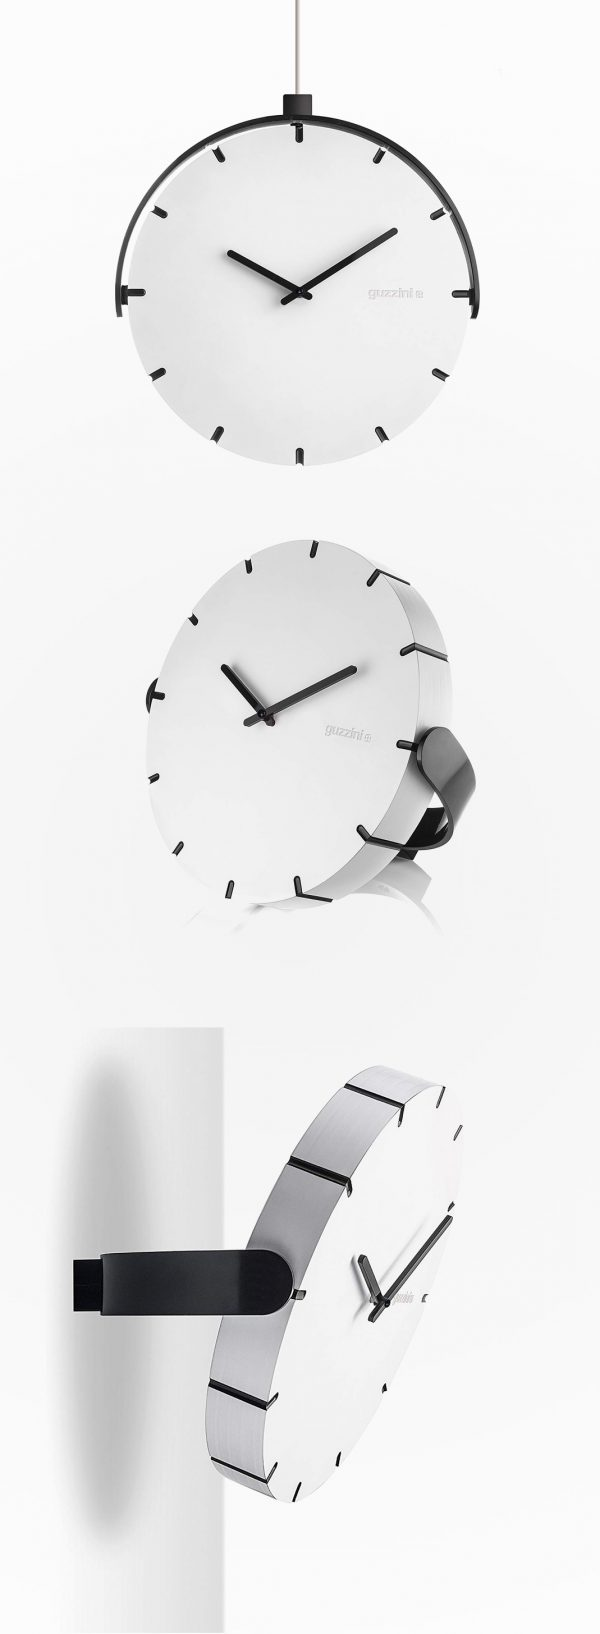 Image of: 41 Mid Century Modern Clocks To Accessorize Your Wall Desk Or Mantel